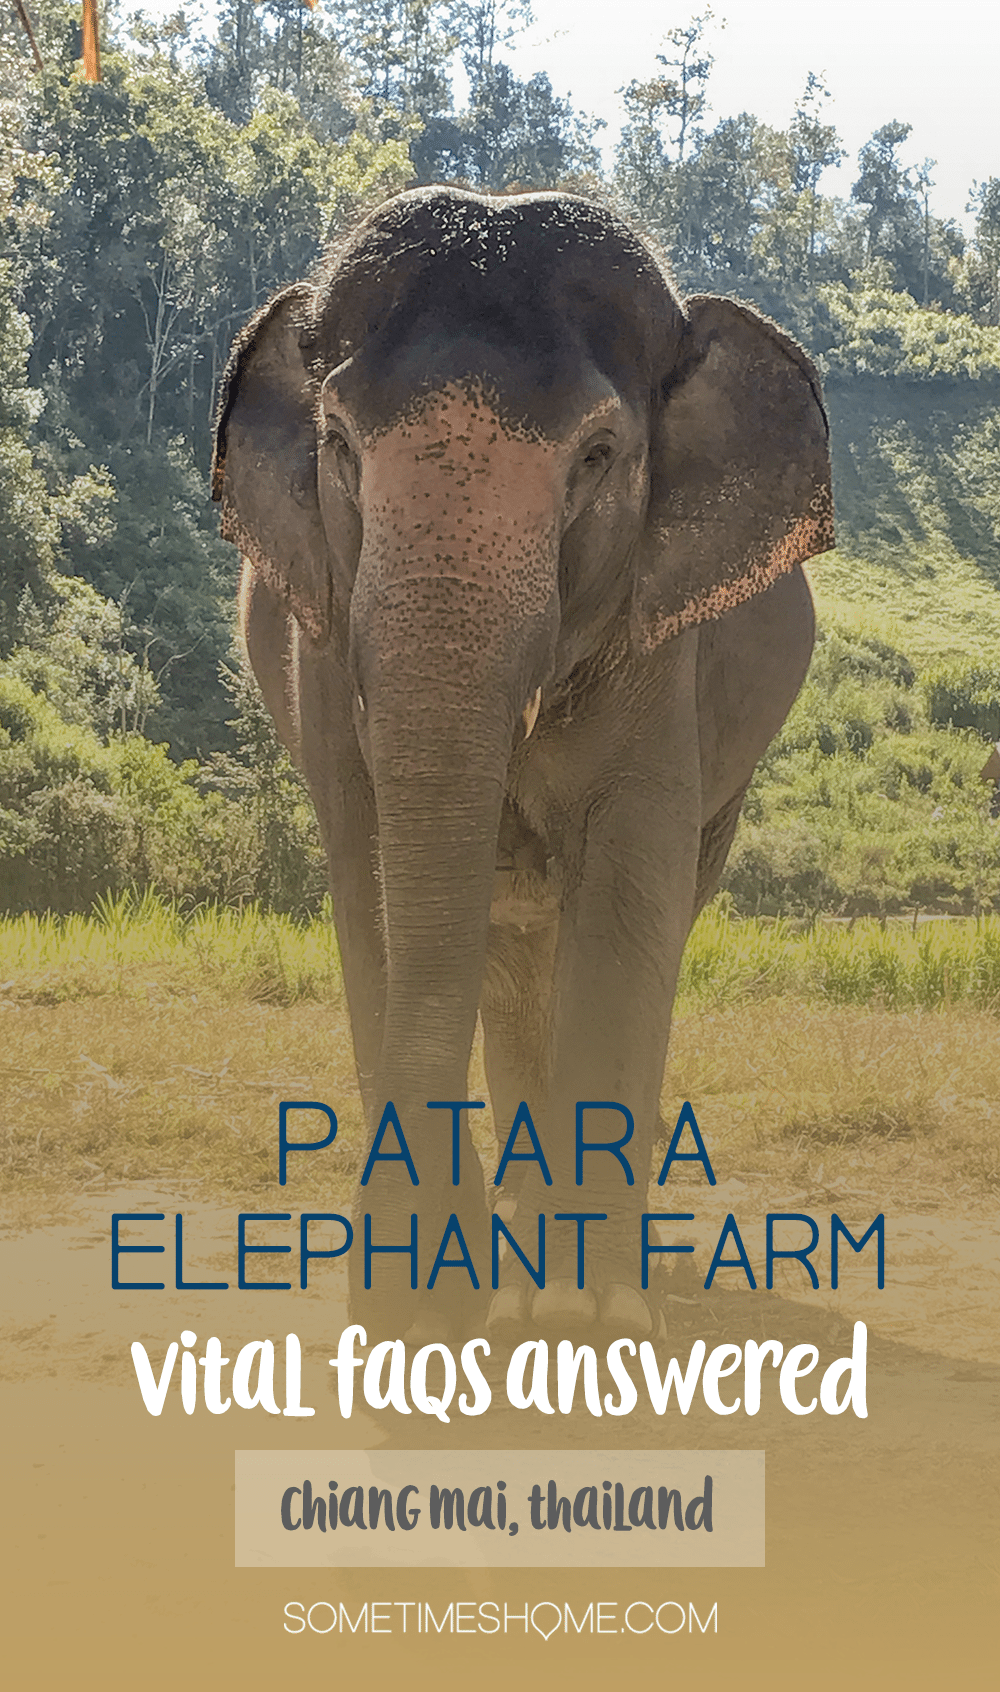 Vital FAQs Answered About Patara Elephant Farm in Chiang Mai. Information by Sometimes Home travel blog. Participating in Elephant Owner for a Day.